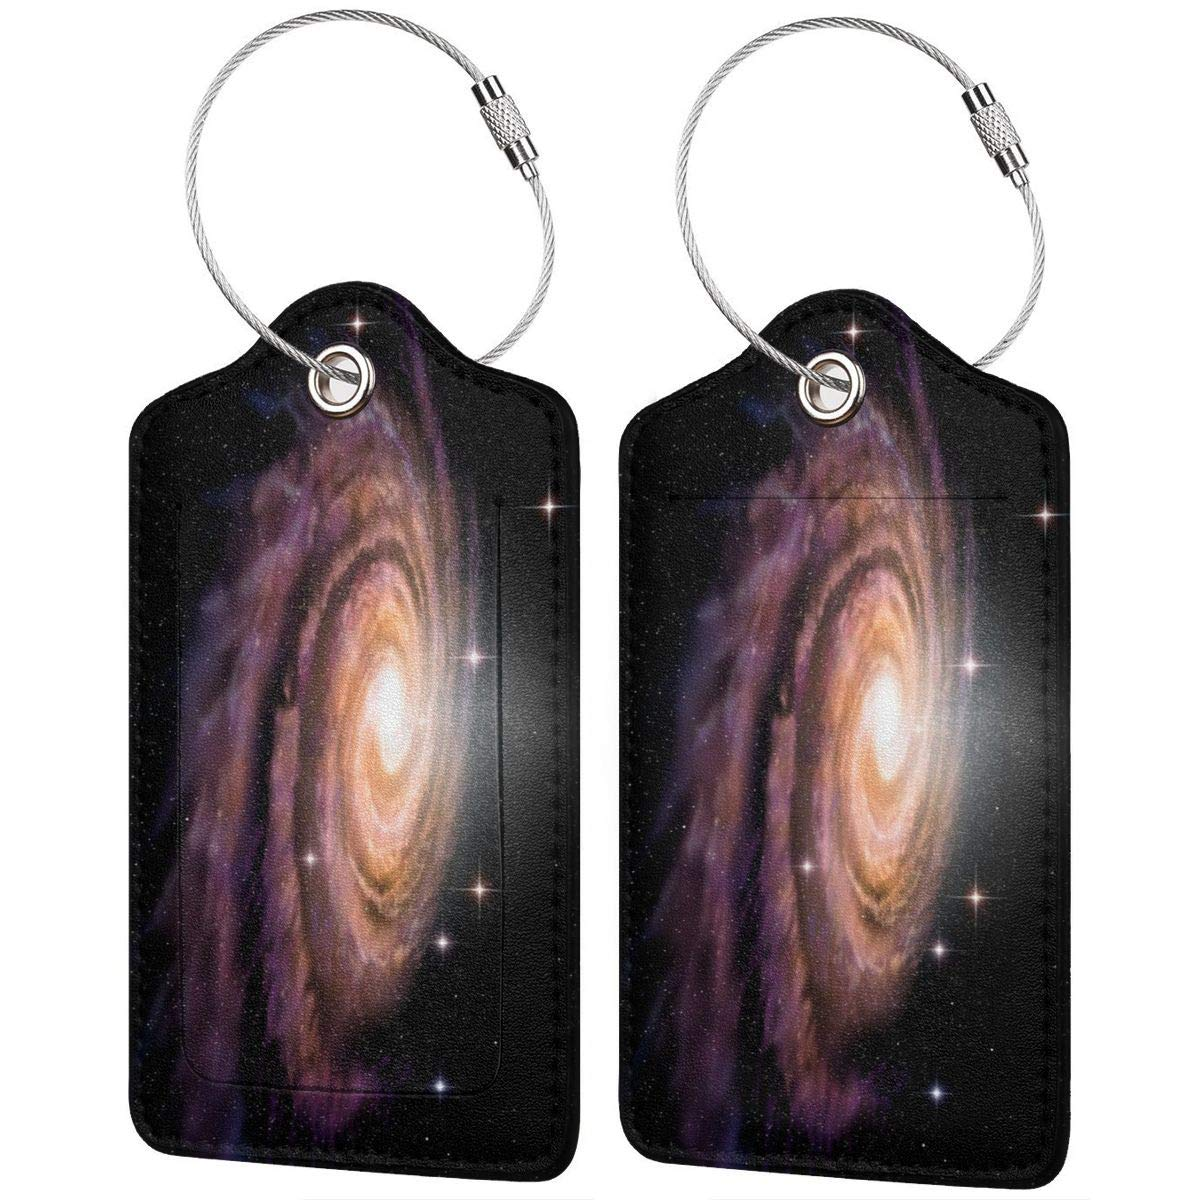 Lucaeat Spiral Galaxy Luggage Tag PU Leather Bag Tag Travel Suitcases ID